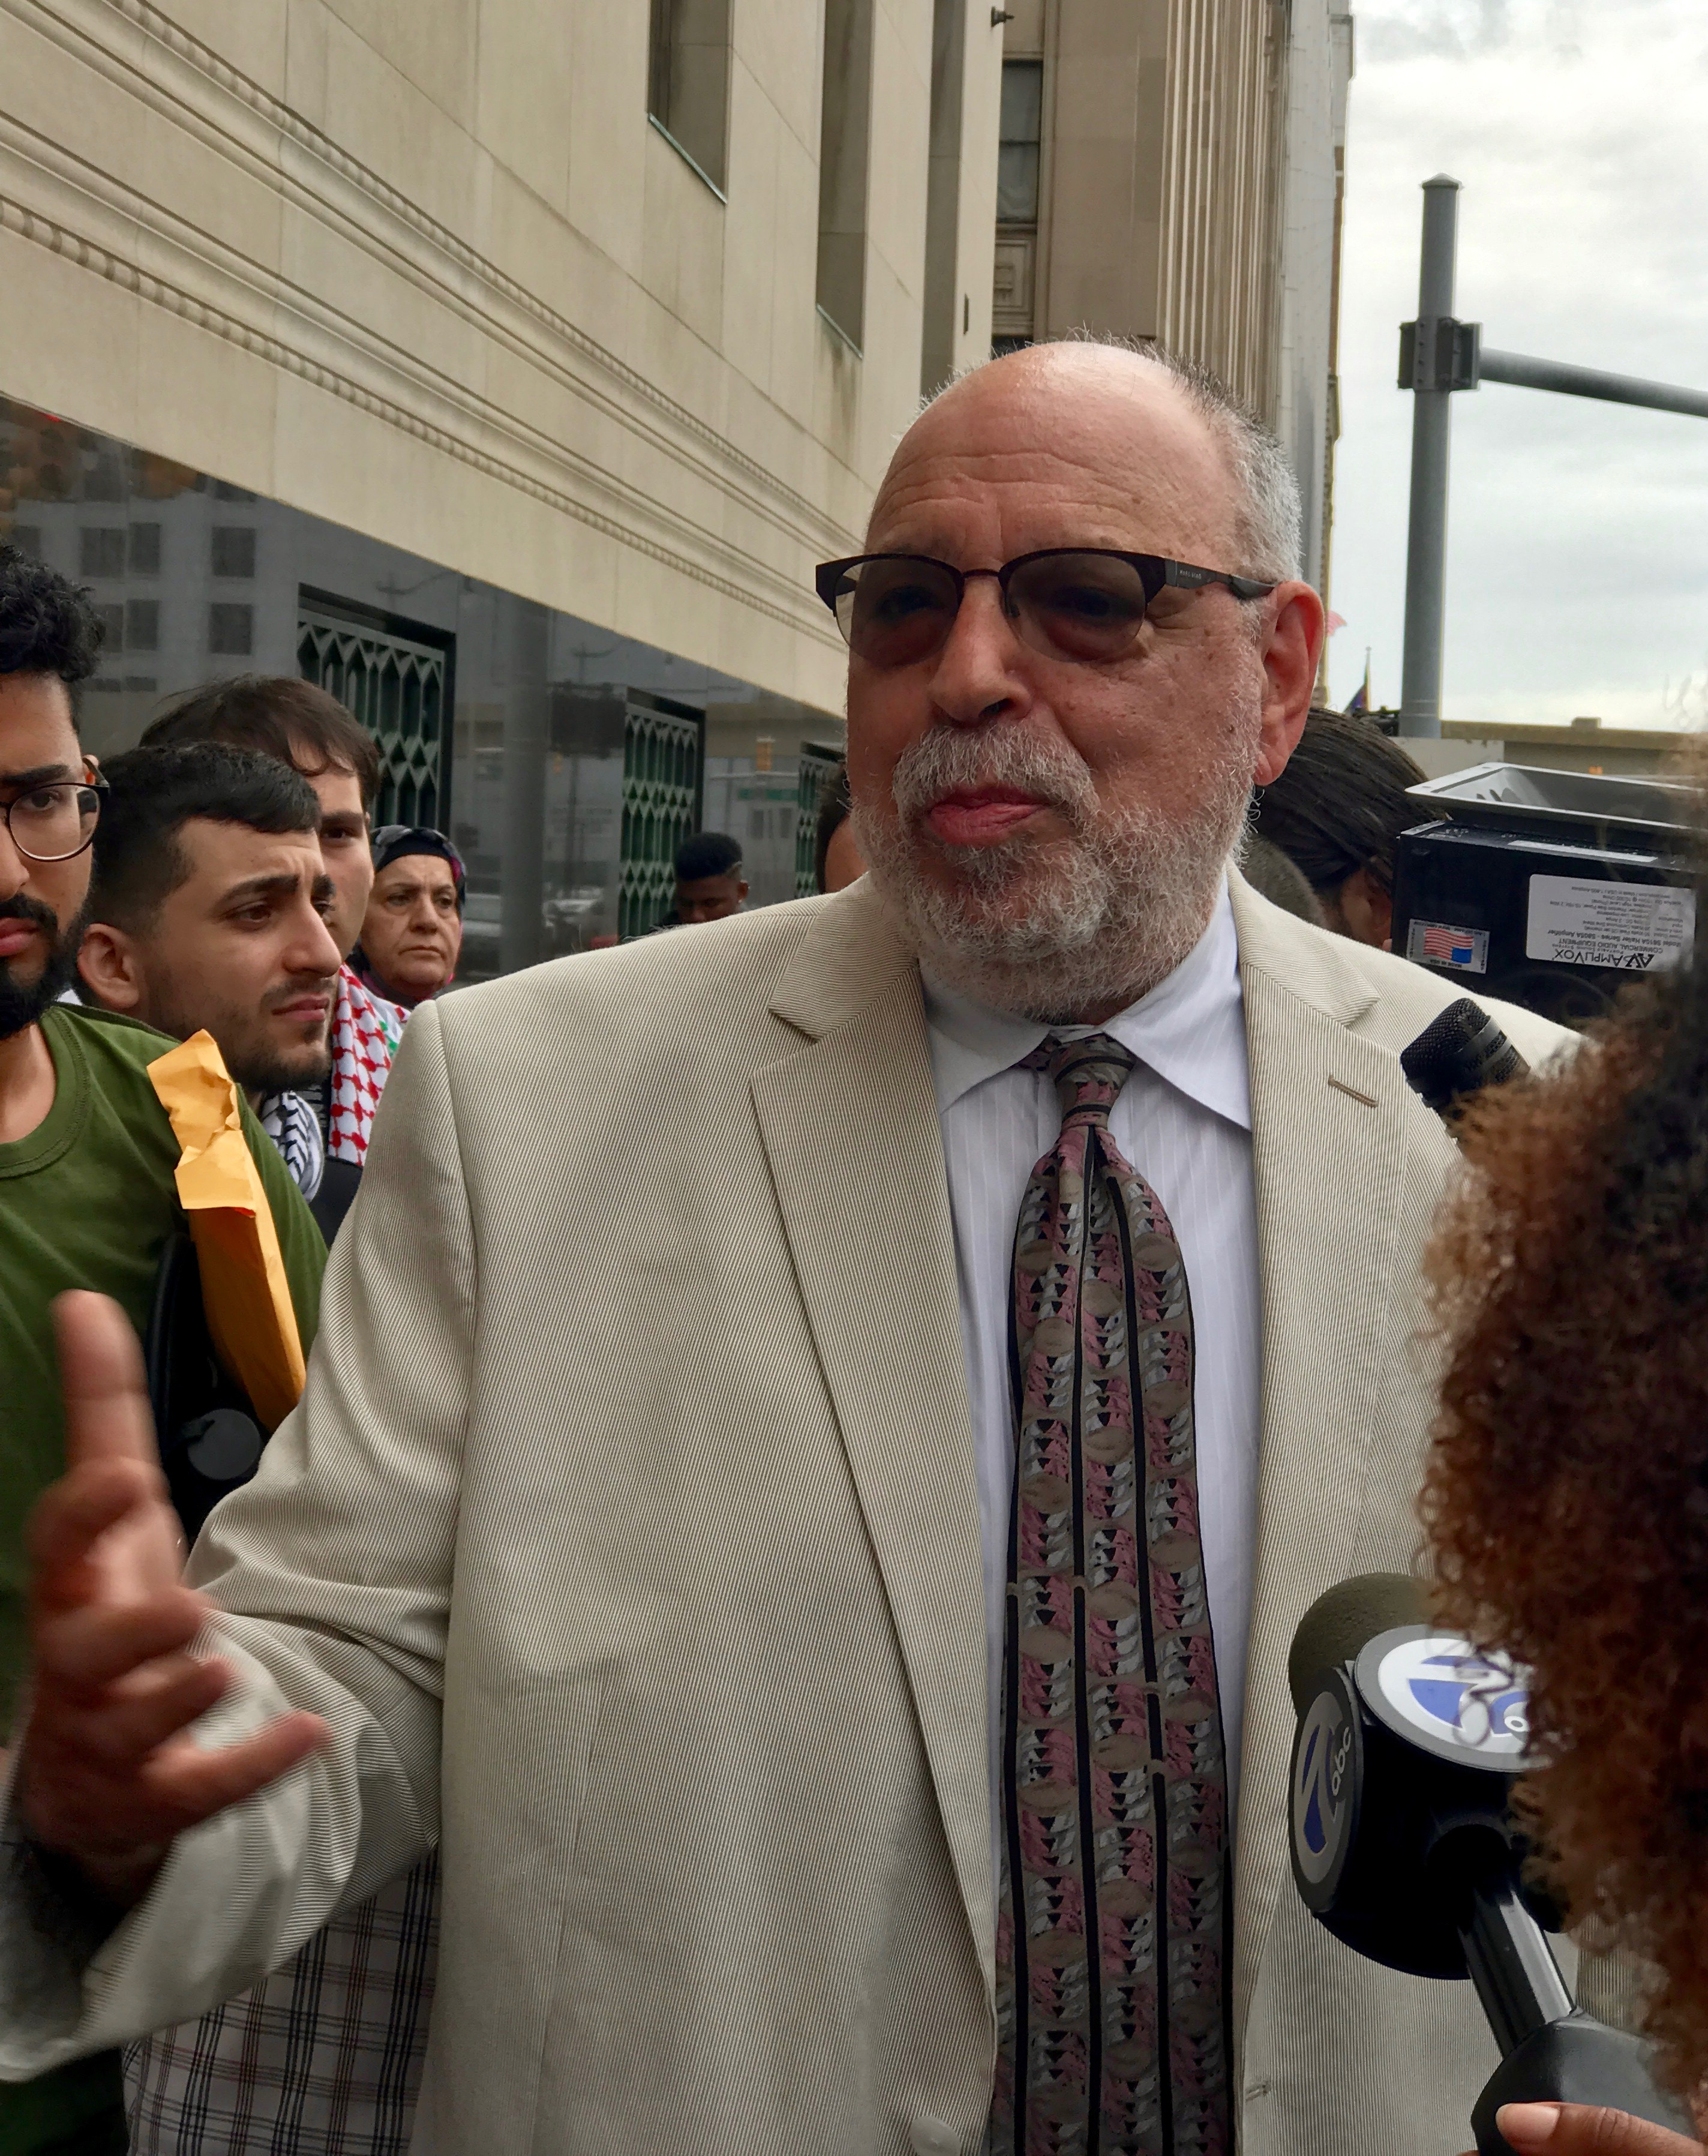 Michael Deutsch speaking to reporters. (Photo by Bill Chambers)